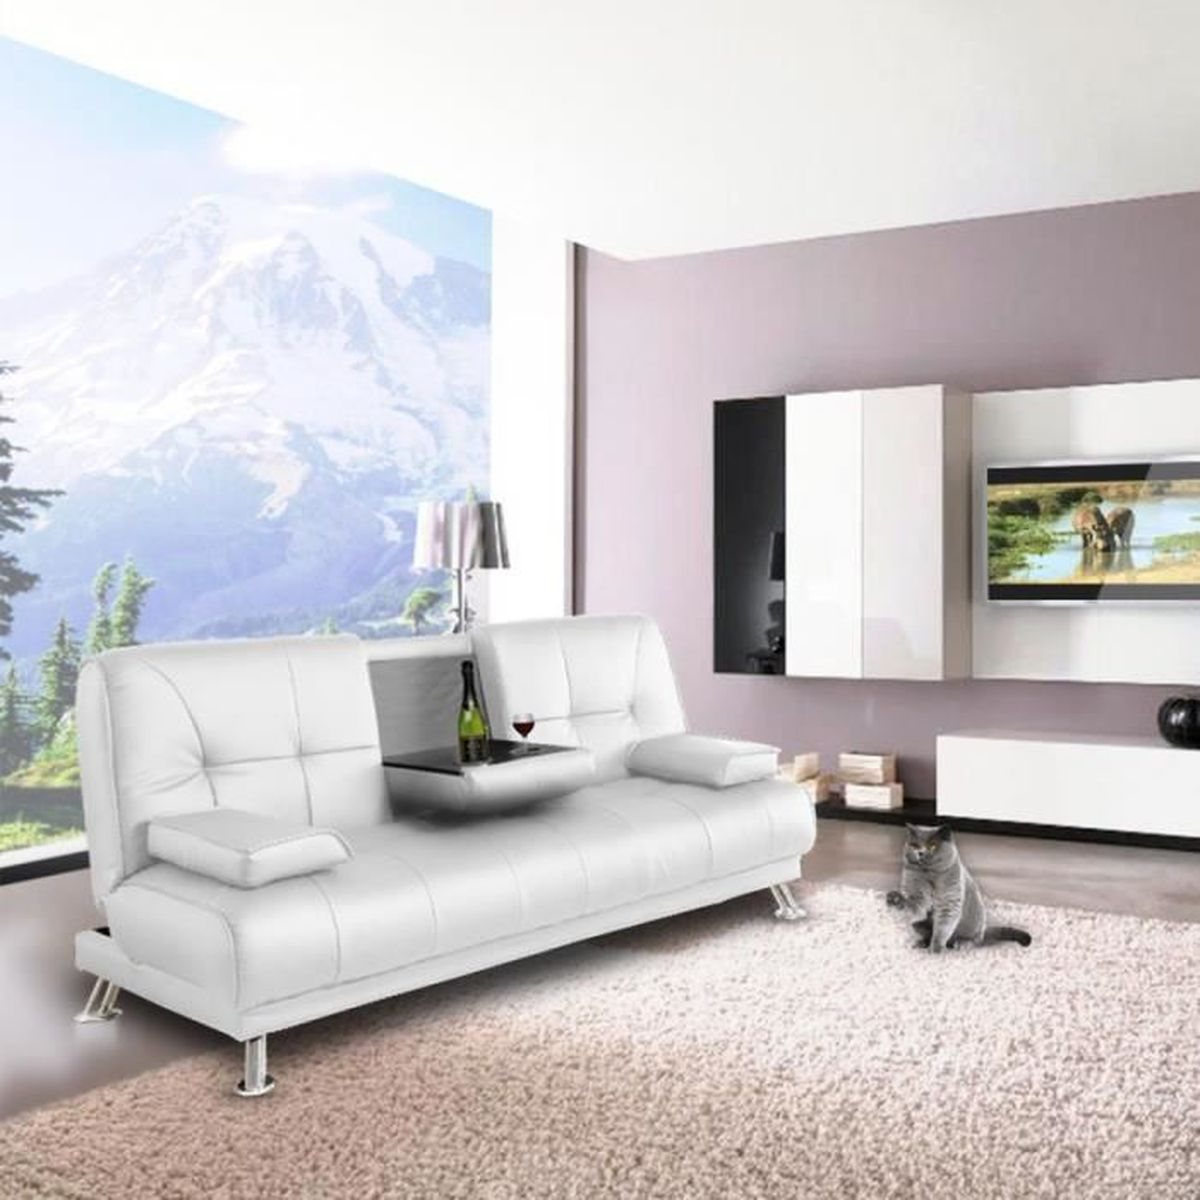 convertible canbar blanc achat vente clic clac cdiscount. Black Bedroom Furniture Sets. Home Design Ideas